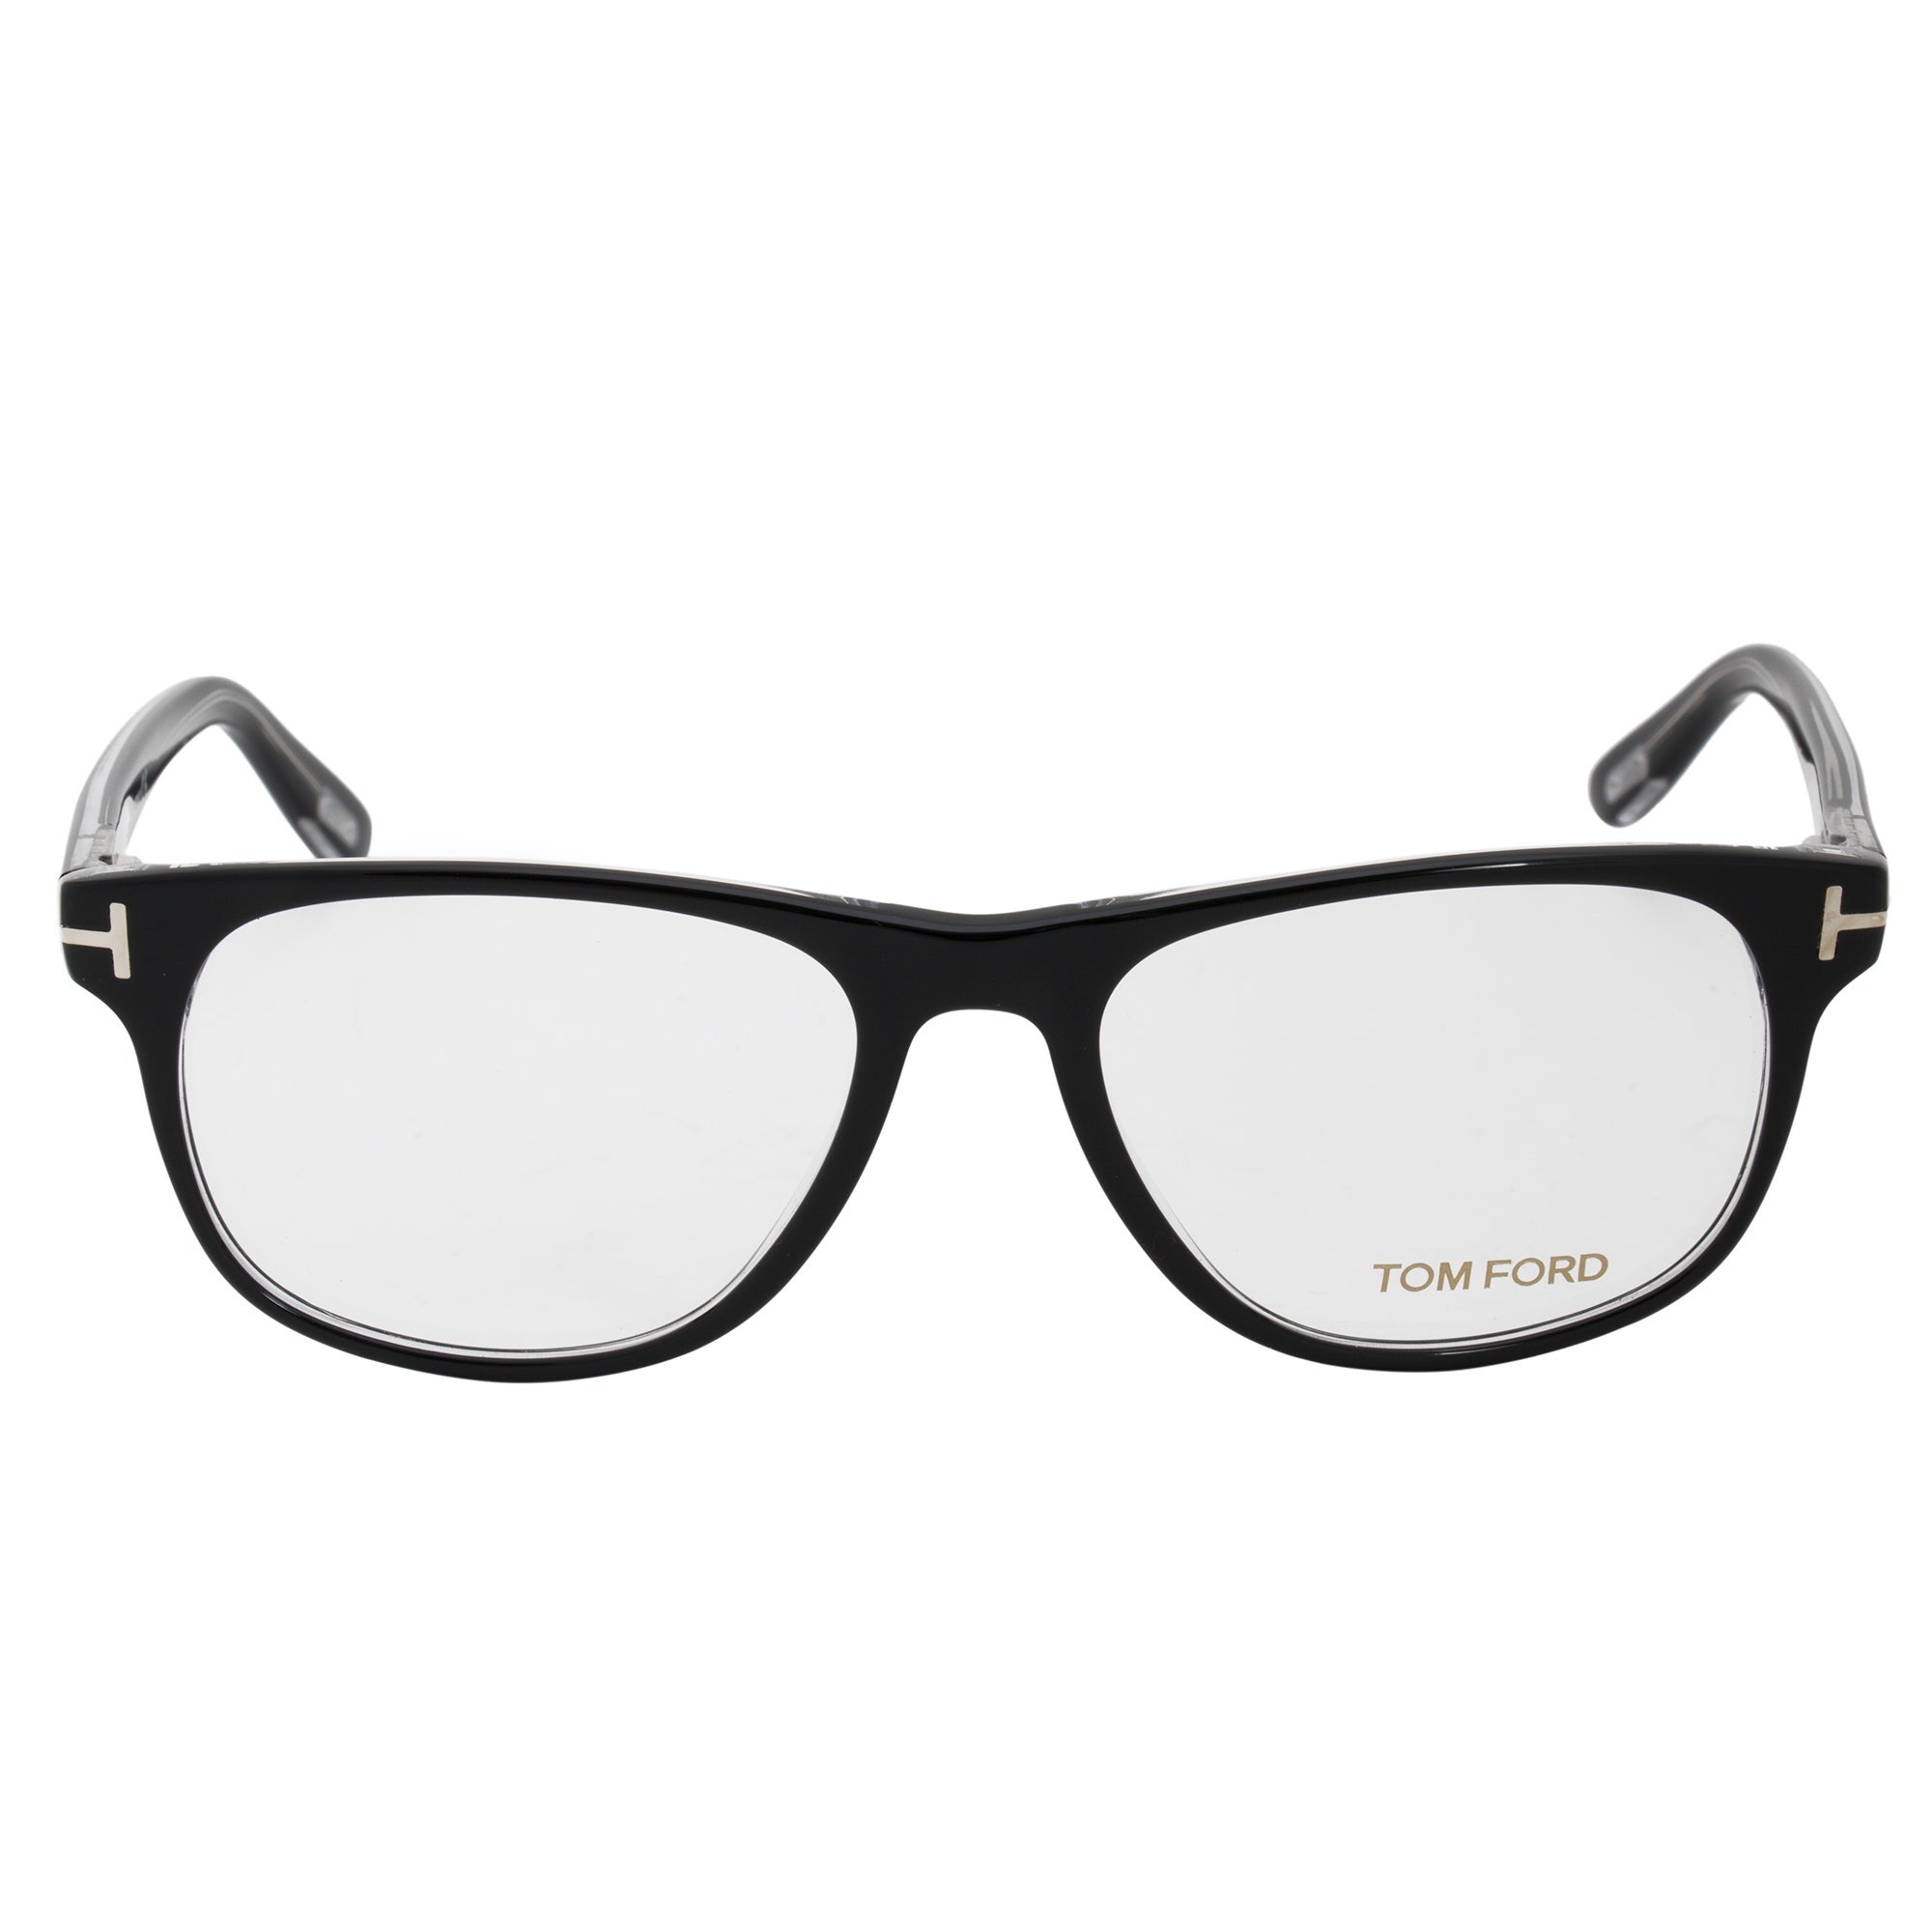 a4525f0872 Tom Ford Eyeglasses